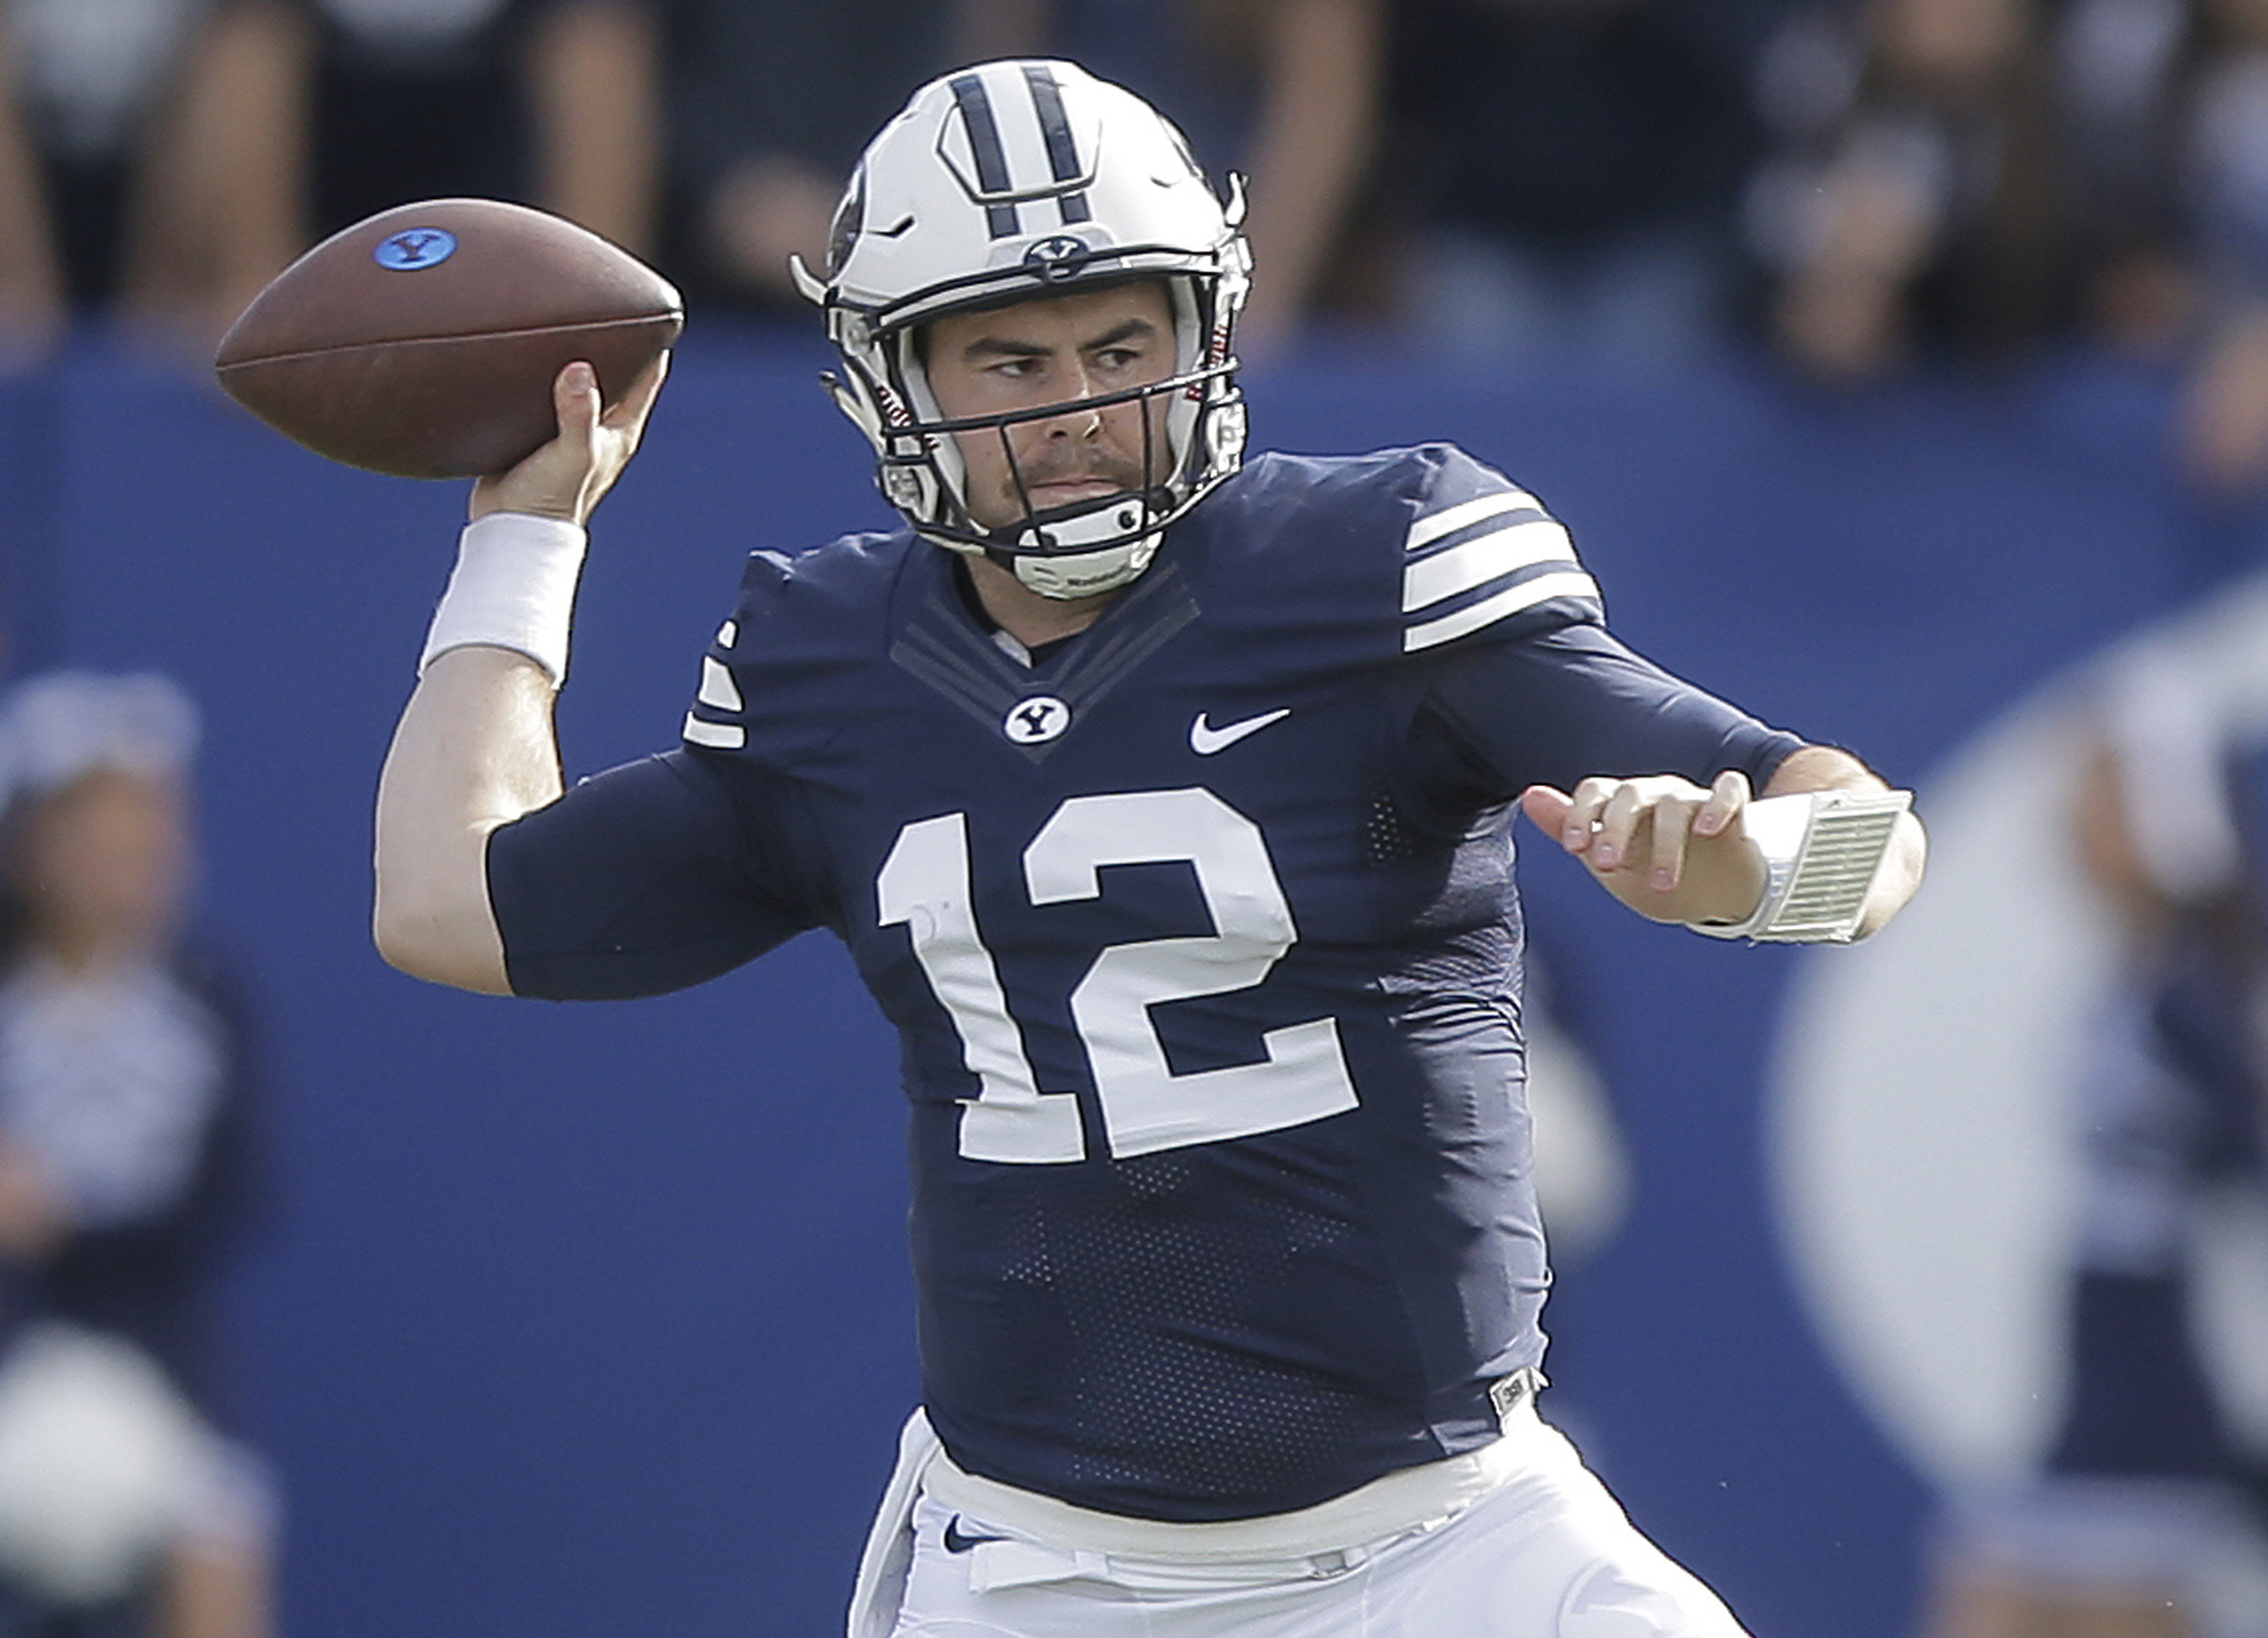 FILE - This Nov. 12, 2016, file photo, shows BYU quarterback Tanner Mangum (12) passing in the first half during an NCAA college football game against Southern Utah, in Provo, Utah. Wyoming meets BYU in the Poinsetta Bowl on Wednesday.  (AP Photo/Rick Bow